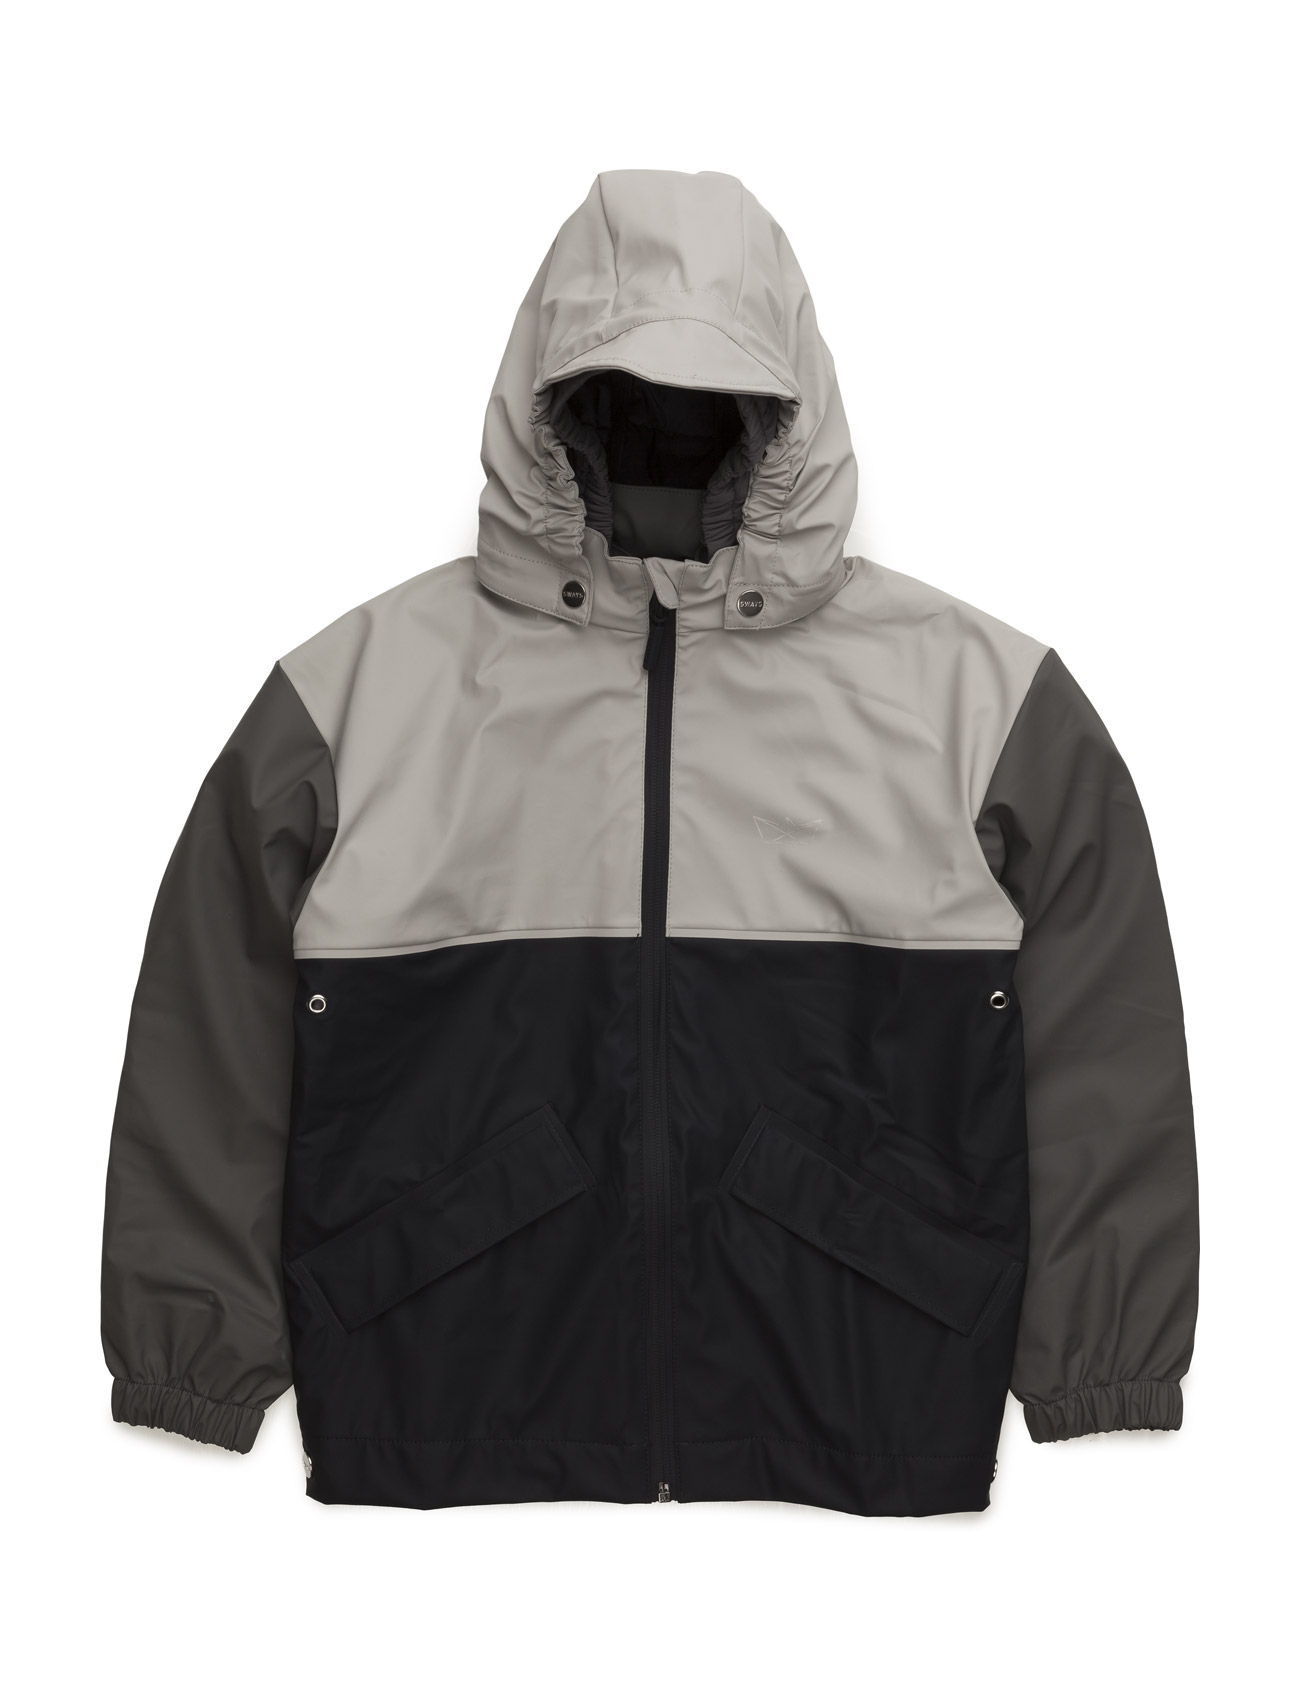 3in1 Jacket SWAYS Thermo & Softshells til Børn i